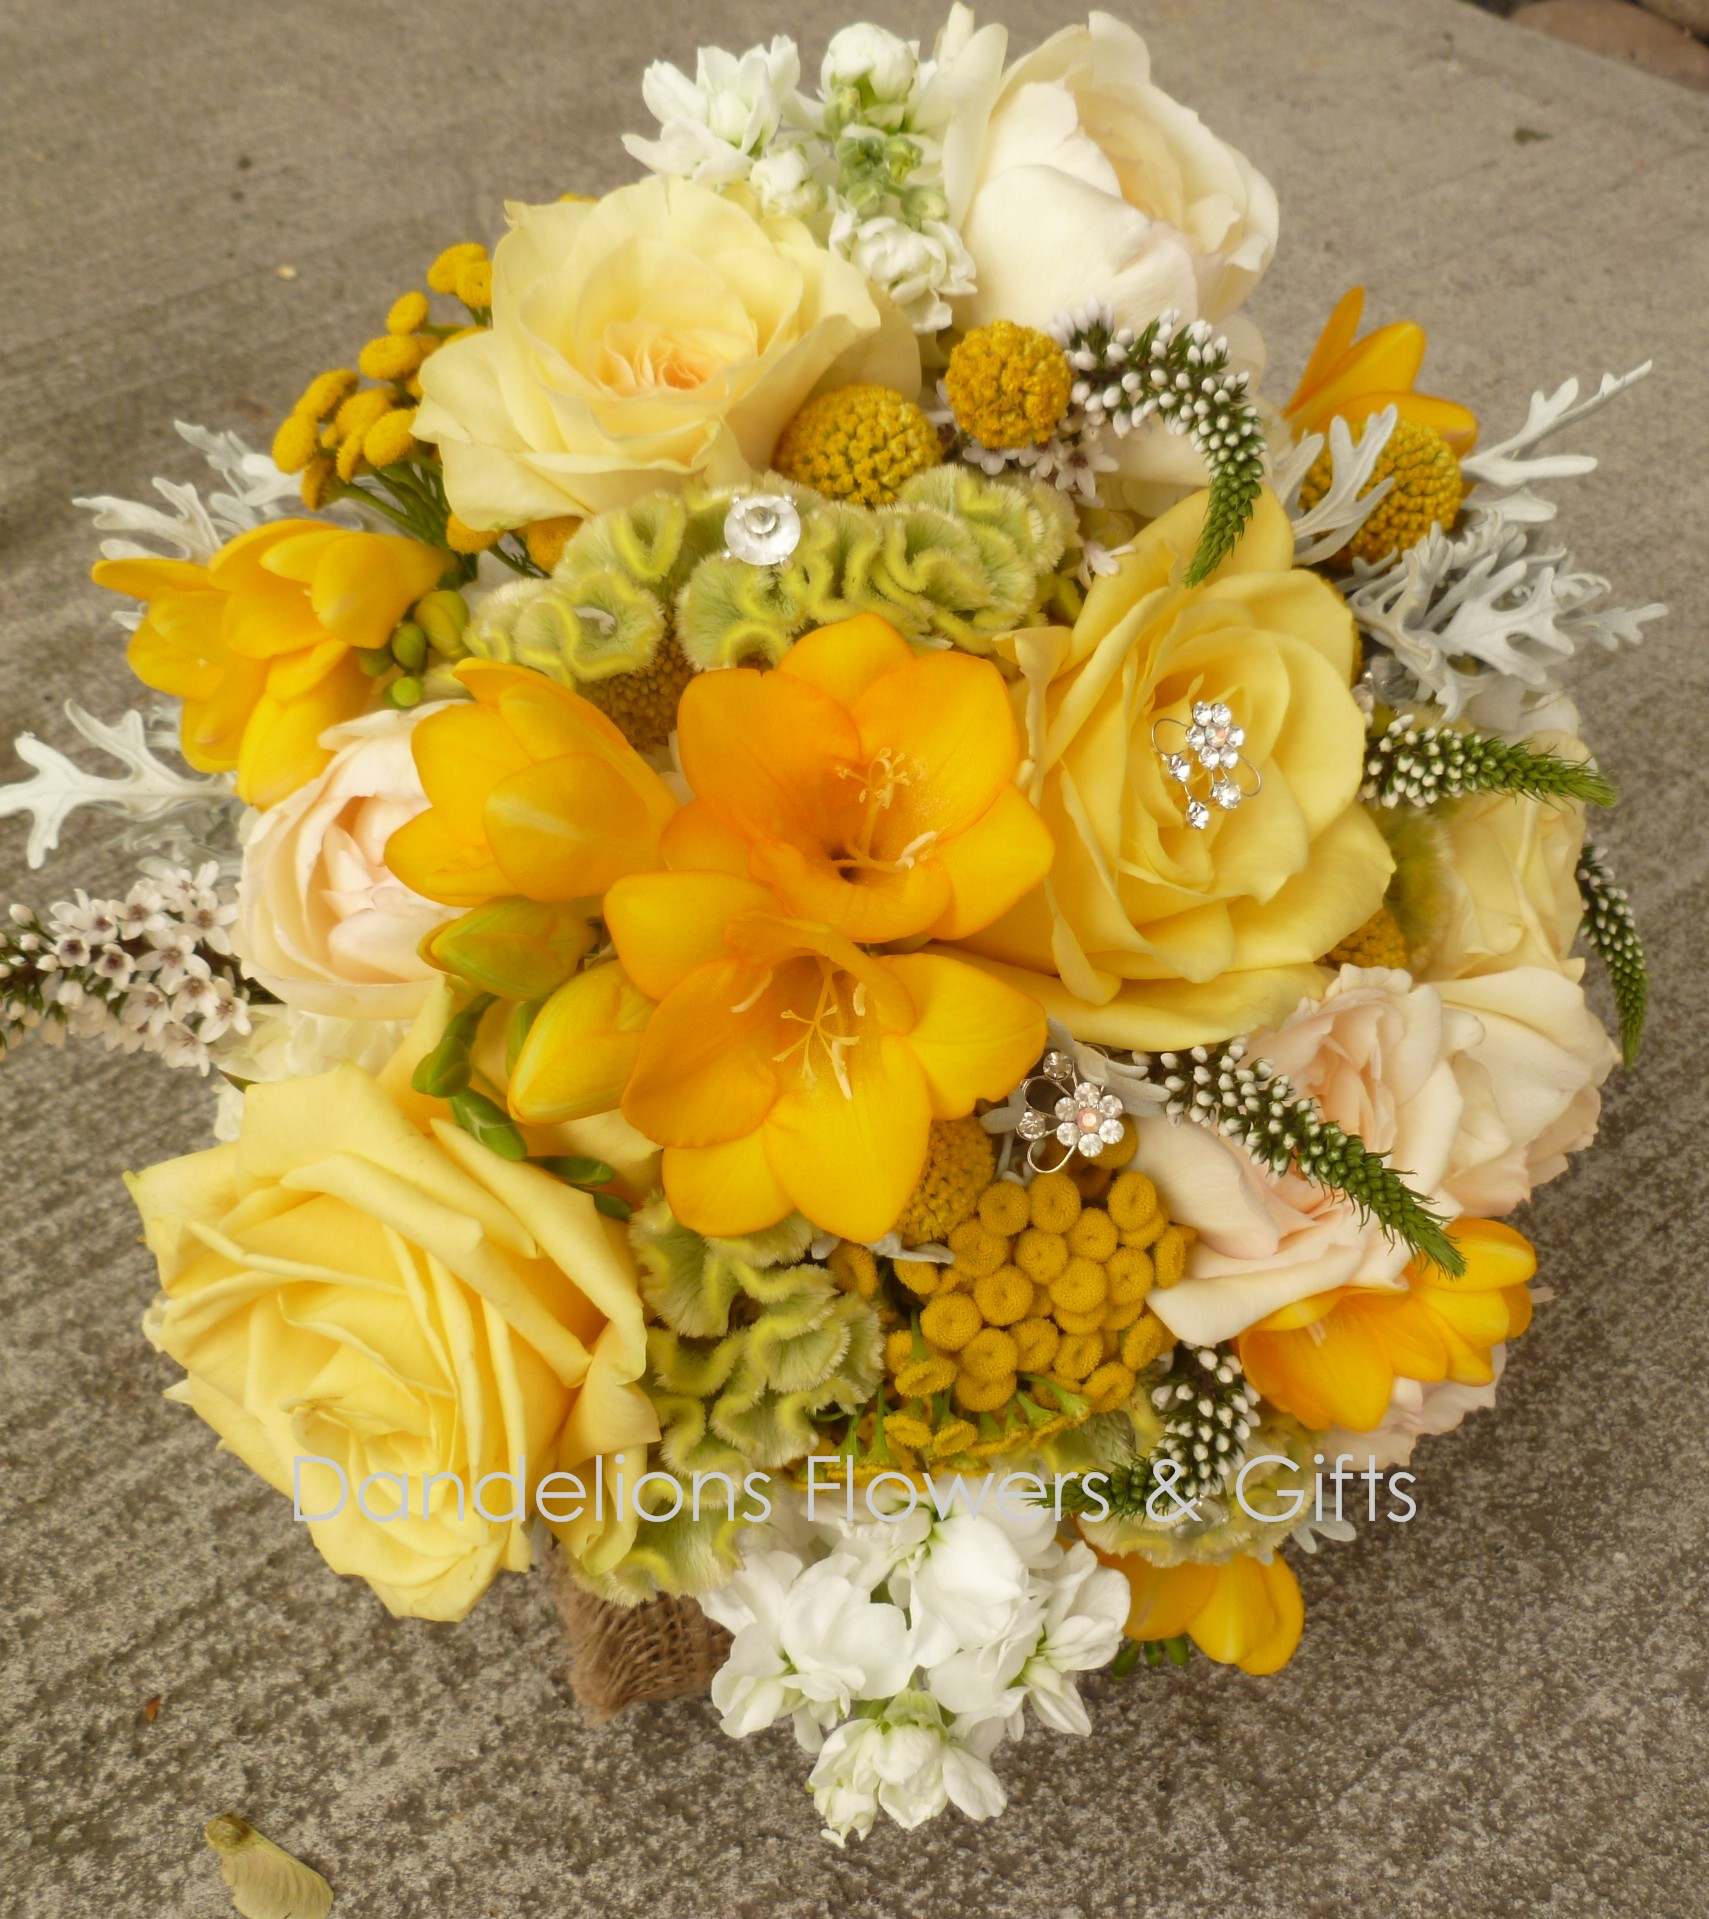 Yellow wedding bouquet dandelions flowers gifts for Dandelion flowers and gifts